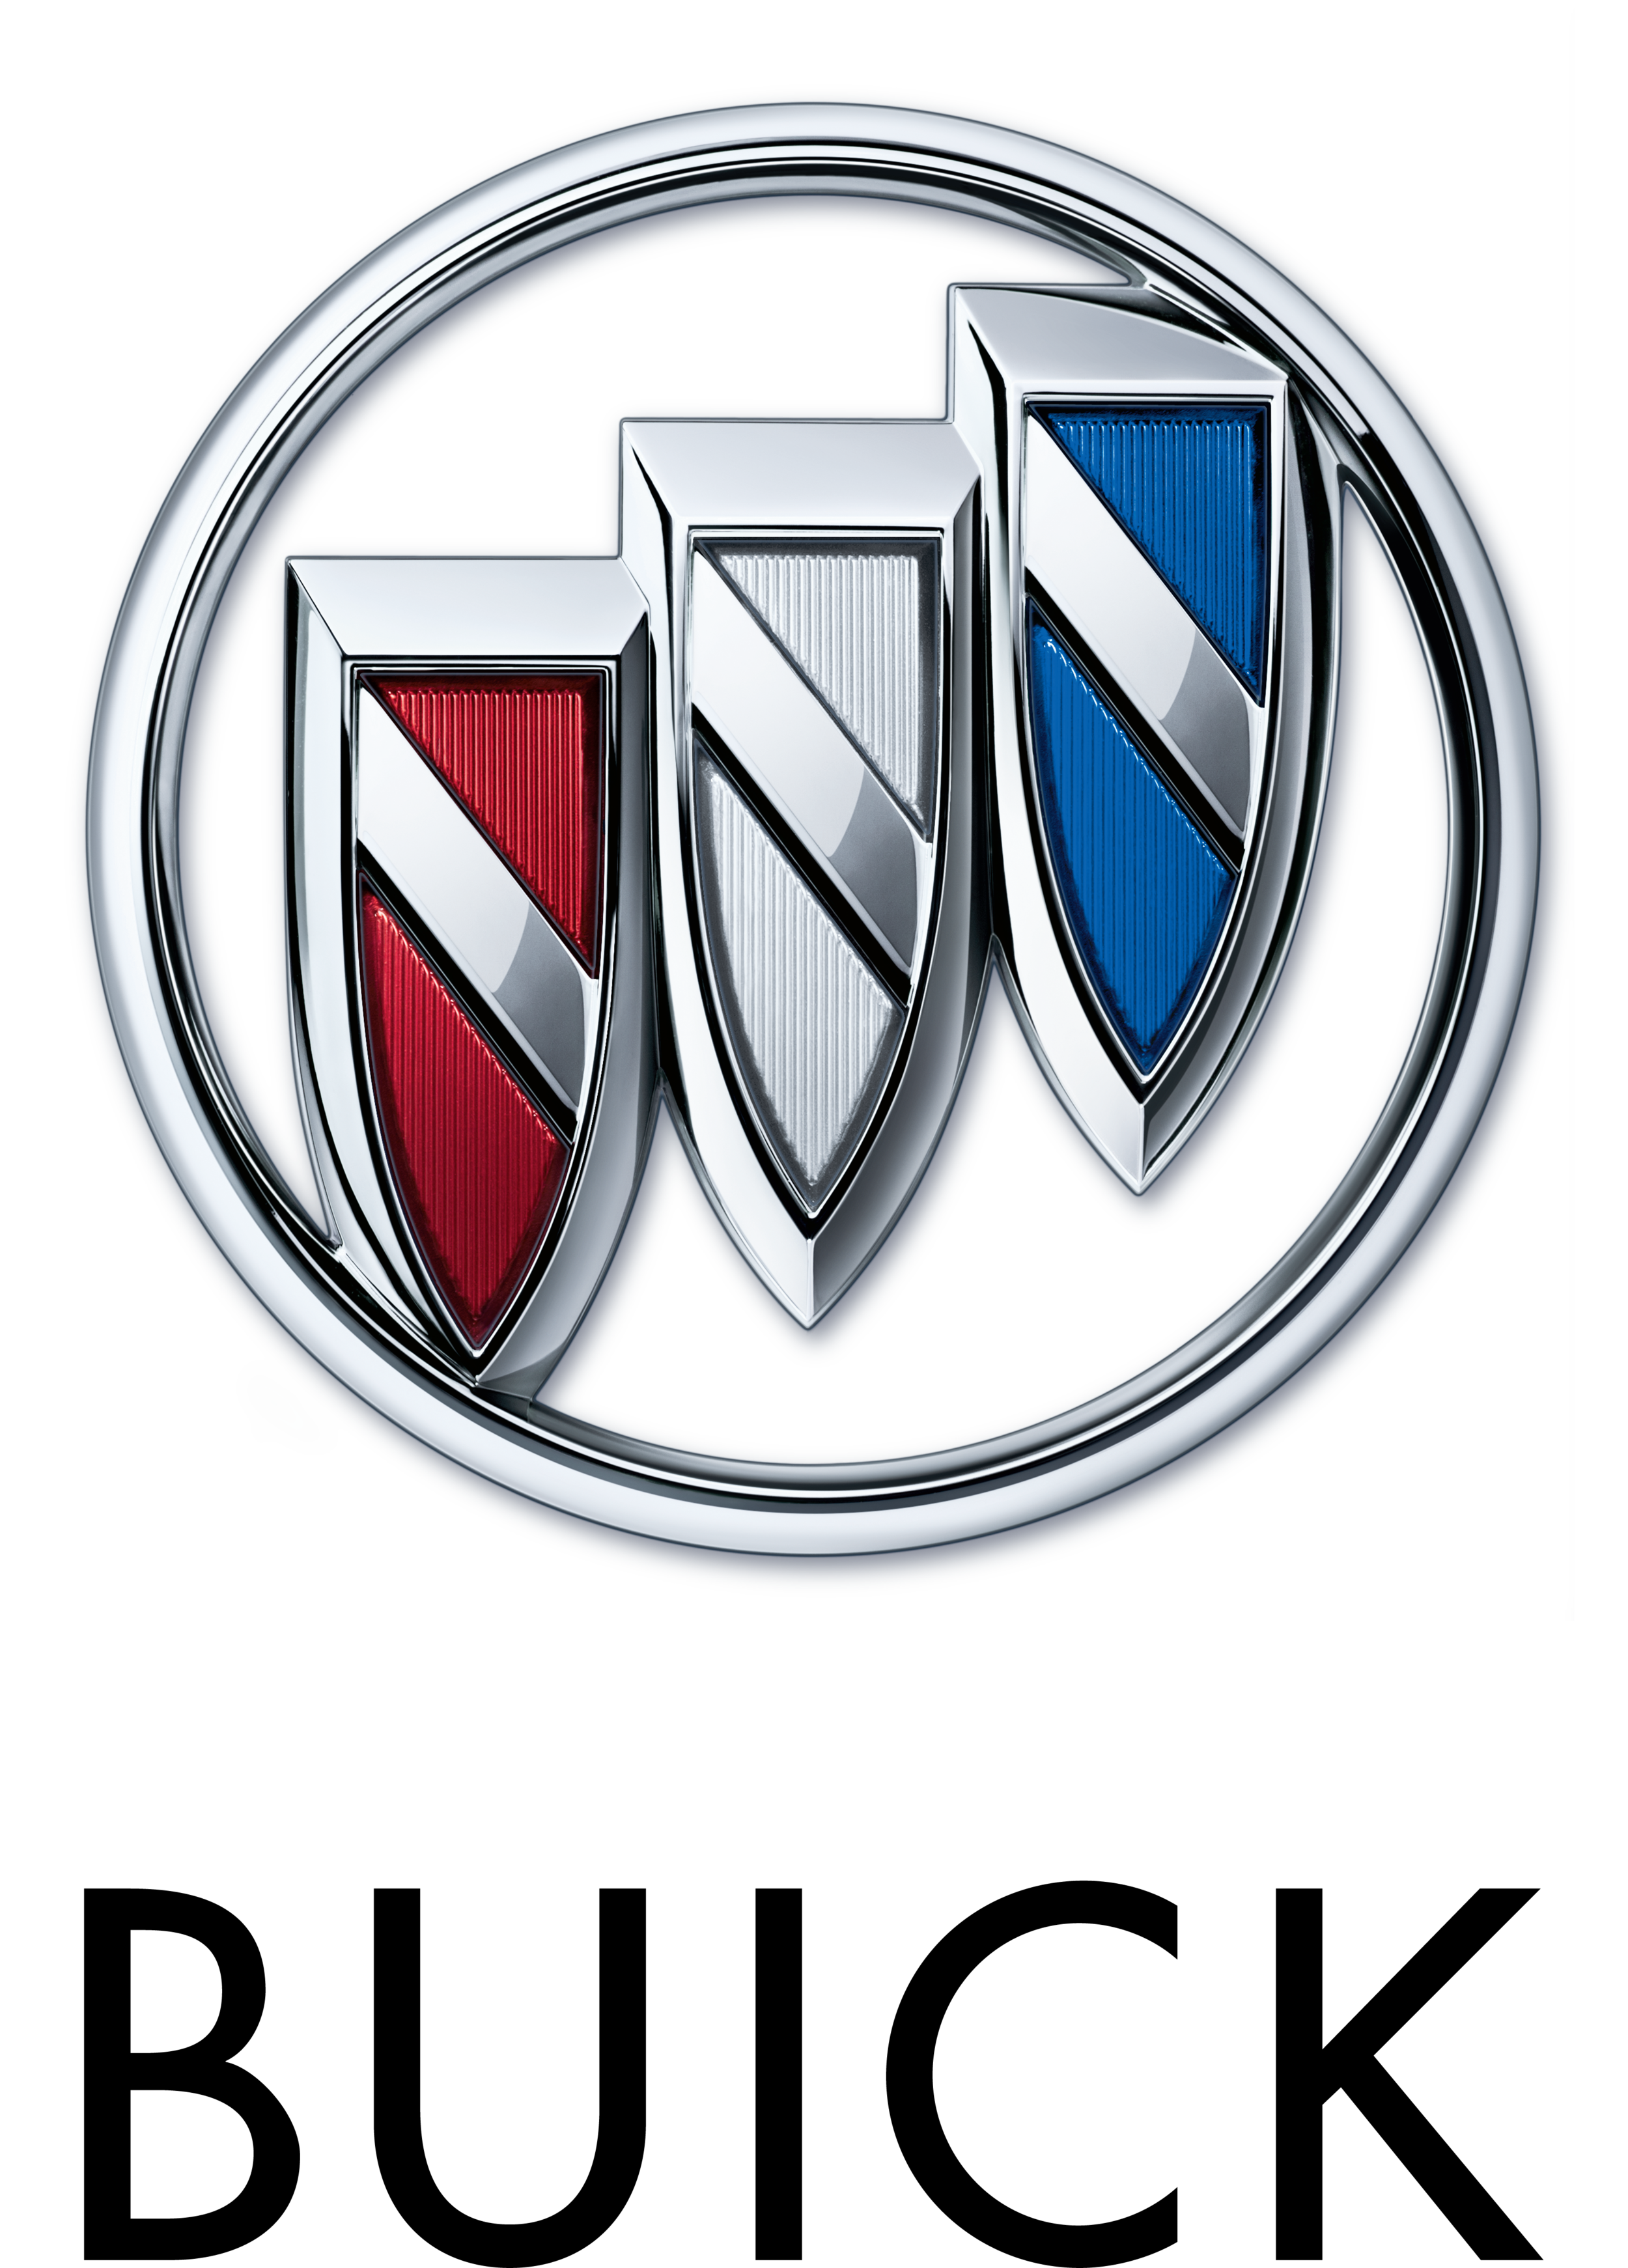 Buick_stk_for-light-background.png